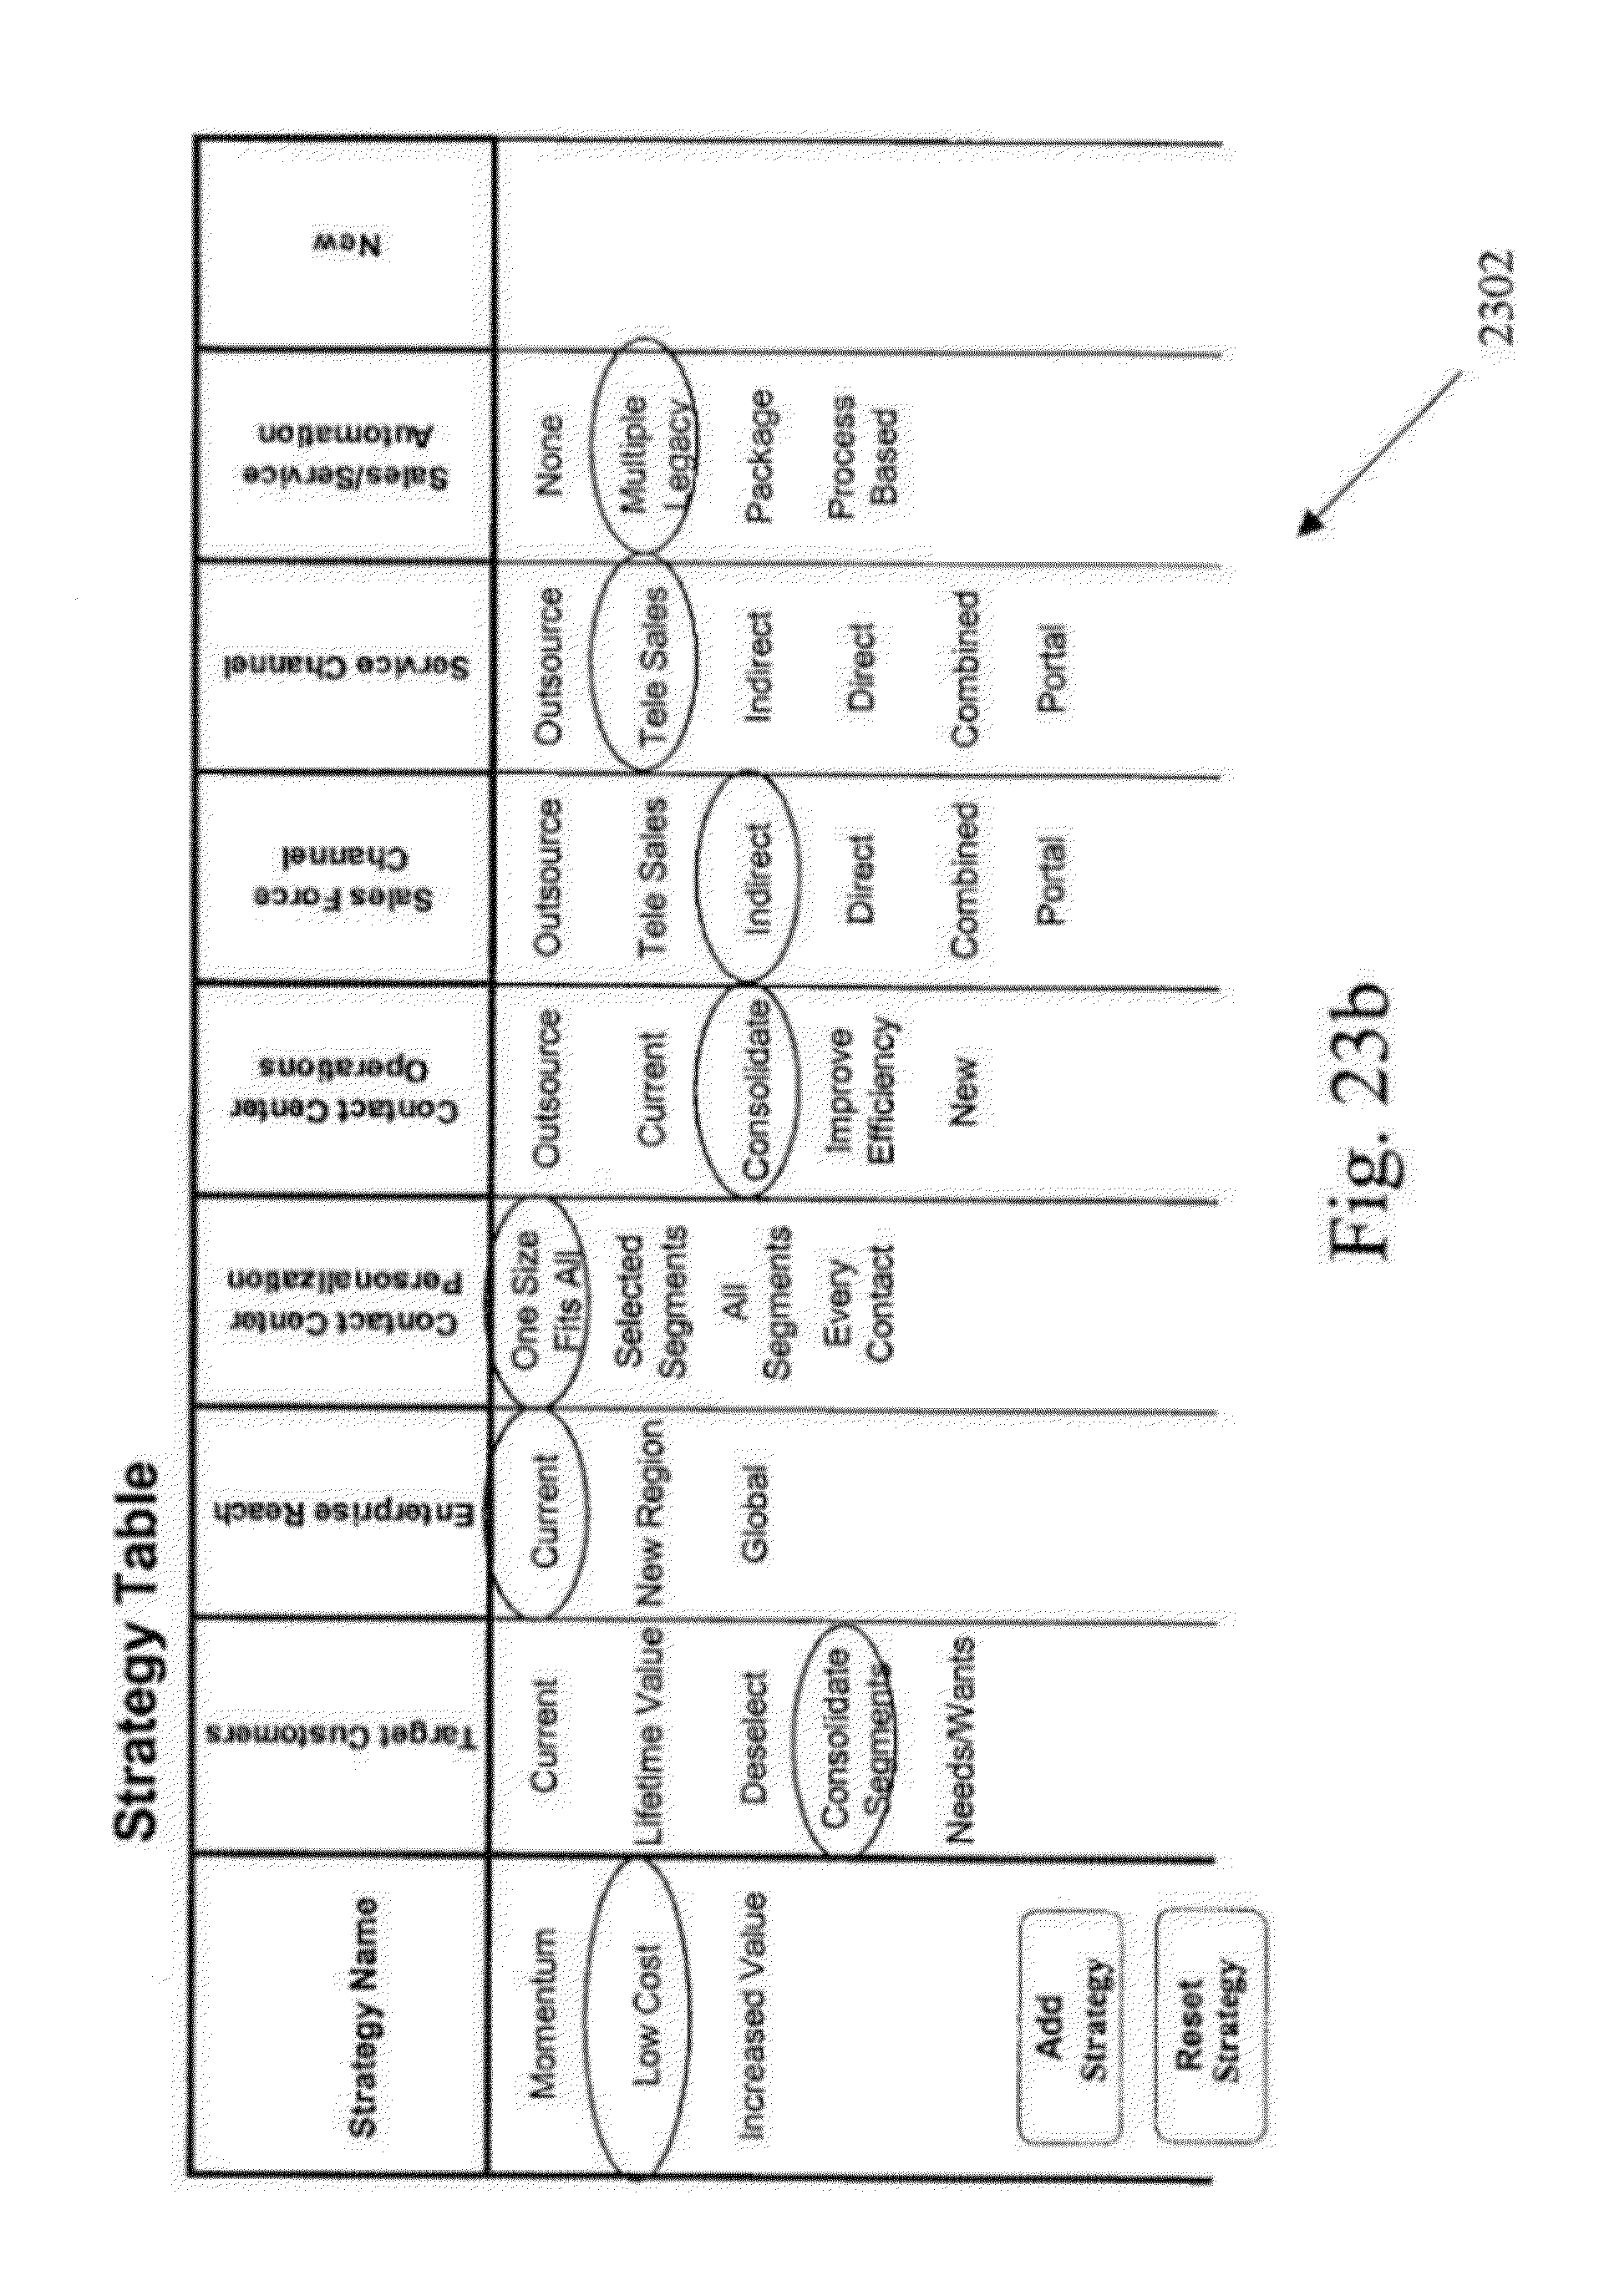 Patent Us 8160988 B1 Plant Cell Diagram Collection Image Bidcom Server 09 0 Petitions